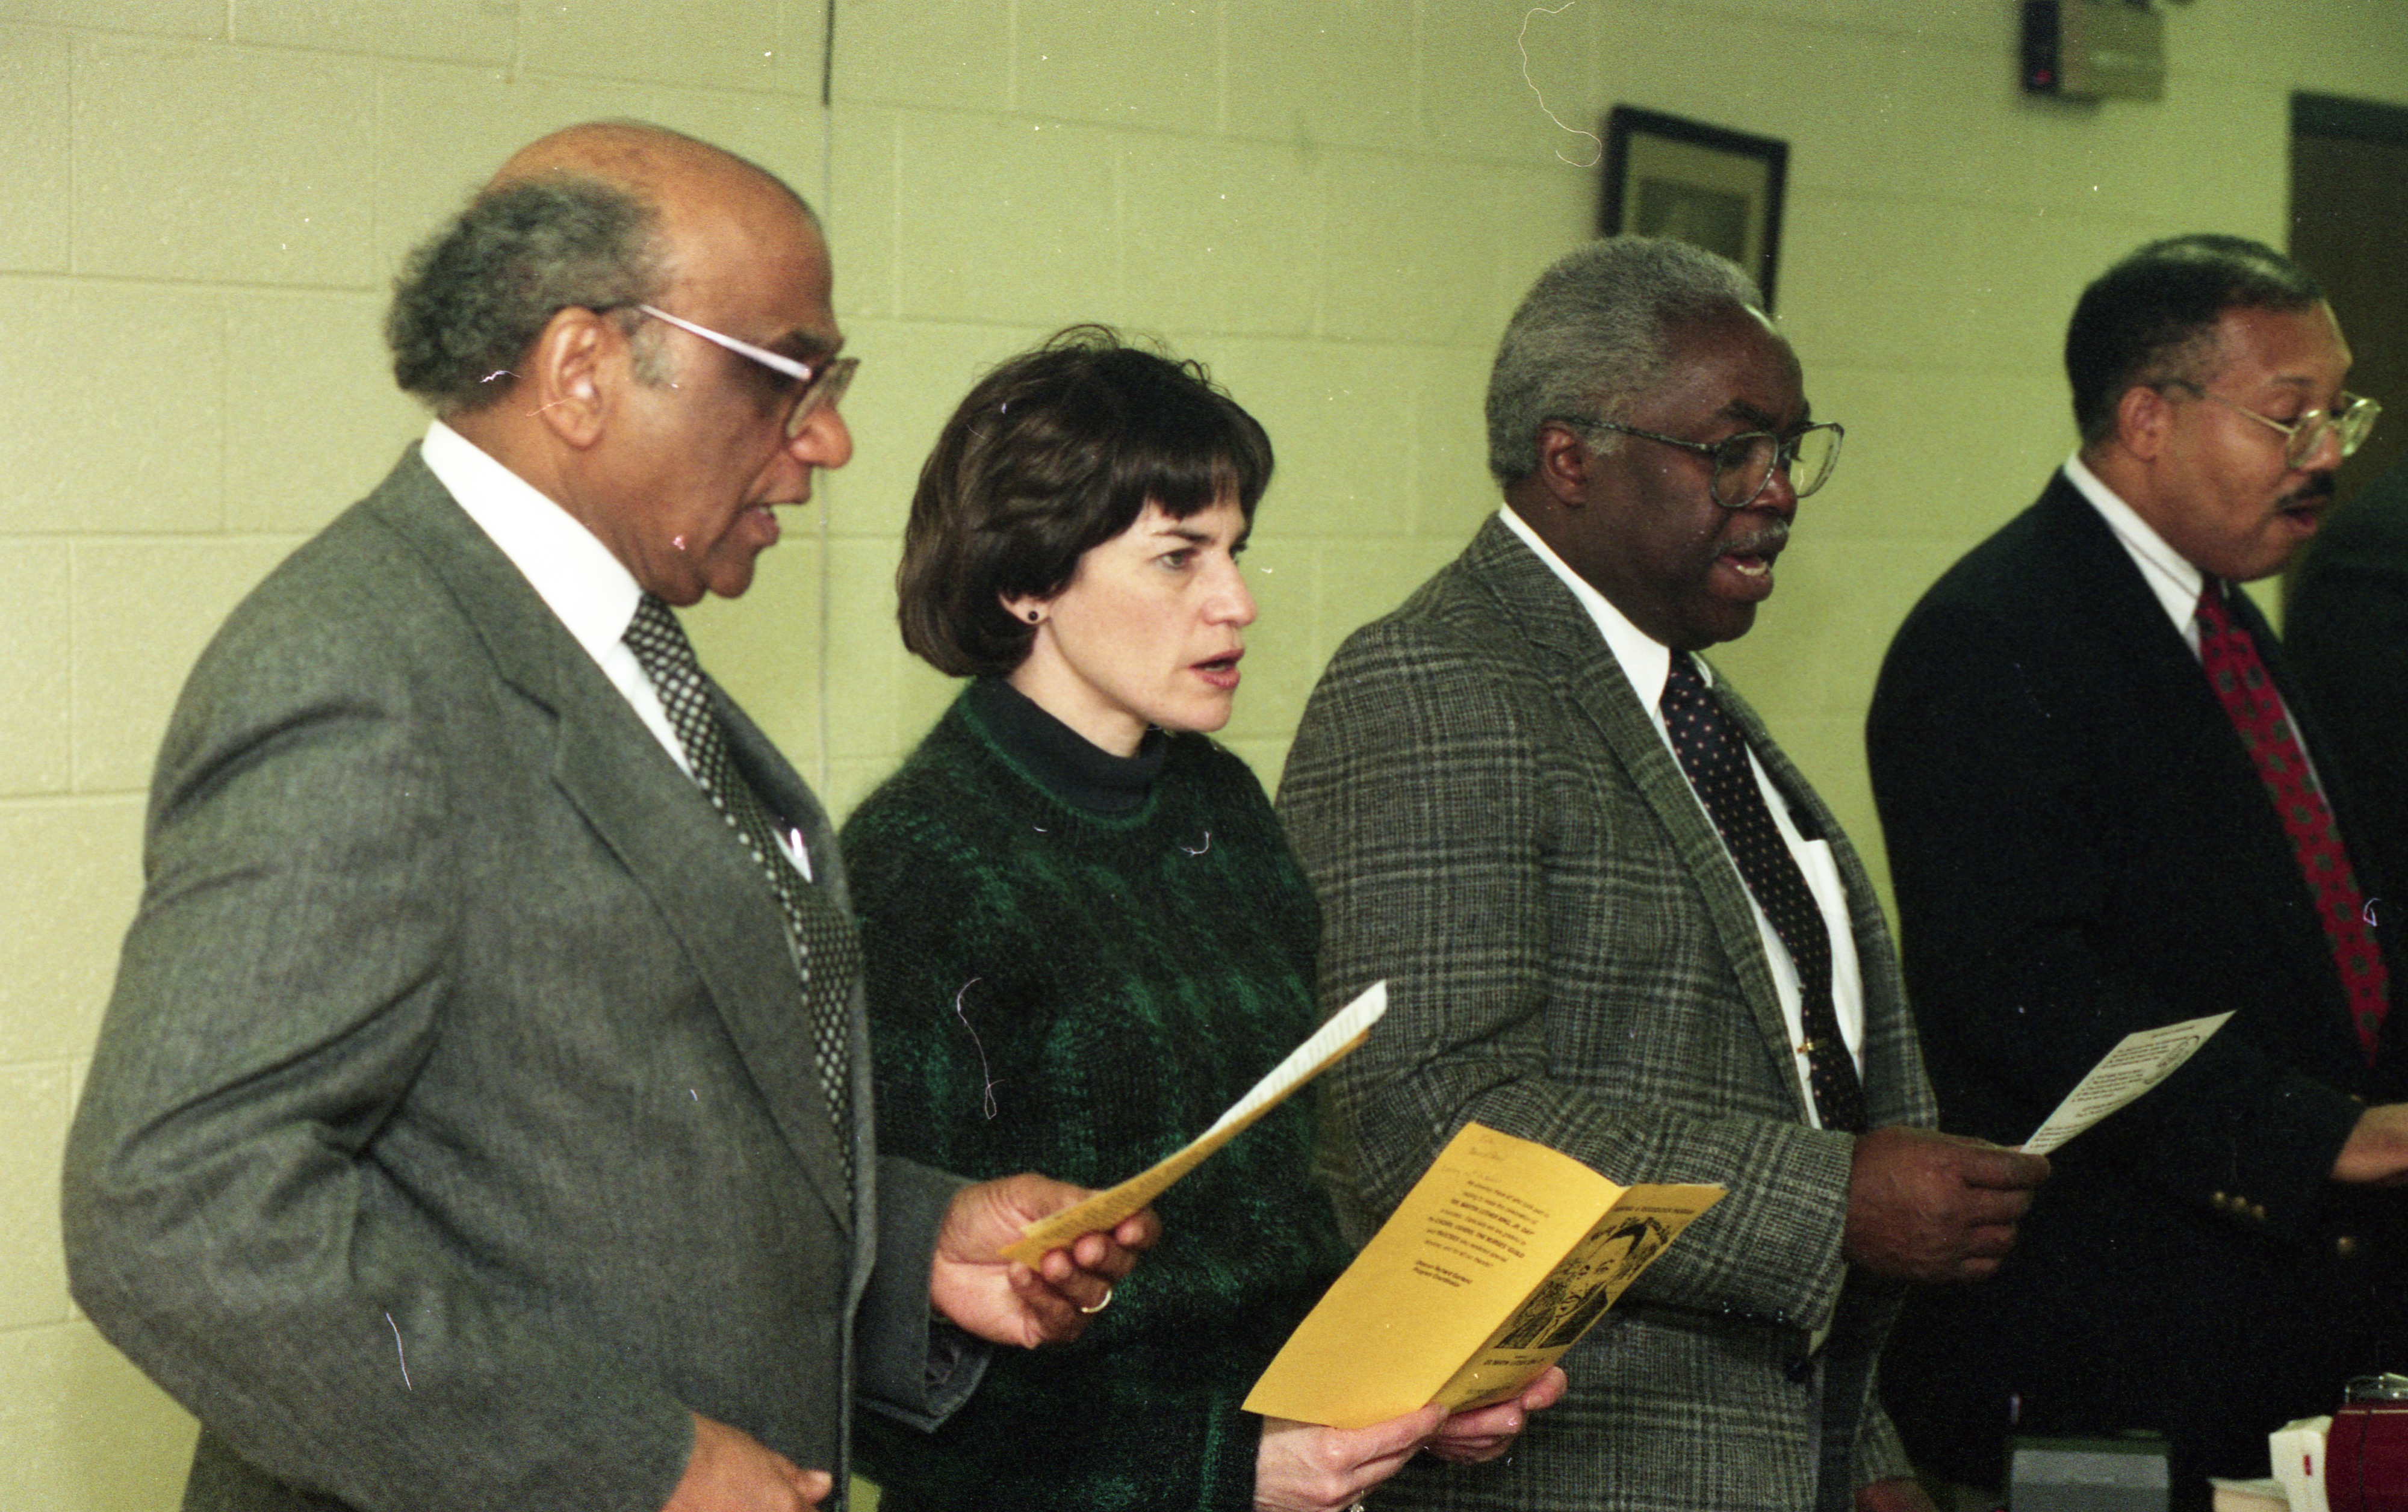 Mayor Liz Brater Joins Memorial Service At Second Baptist Church To